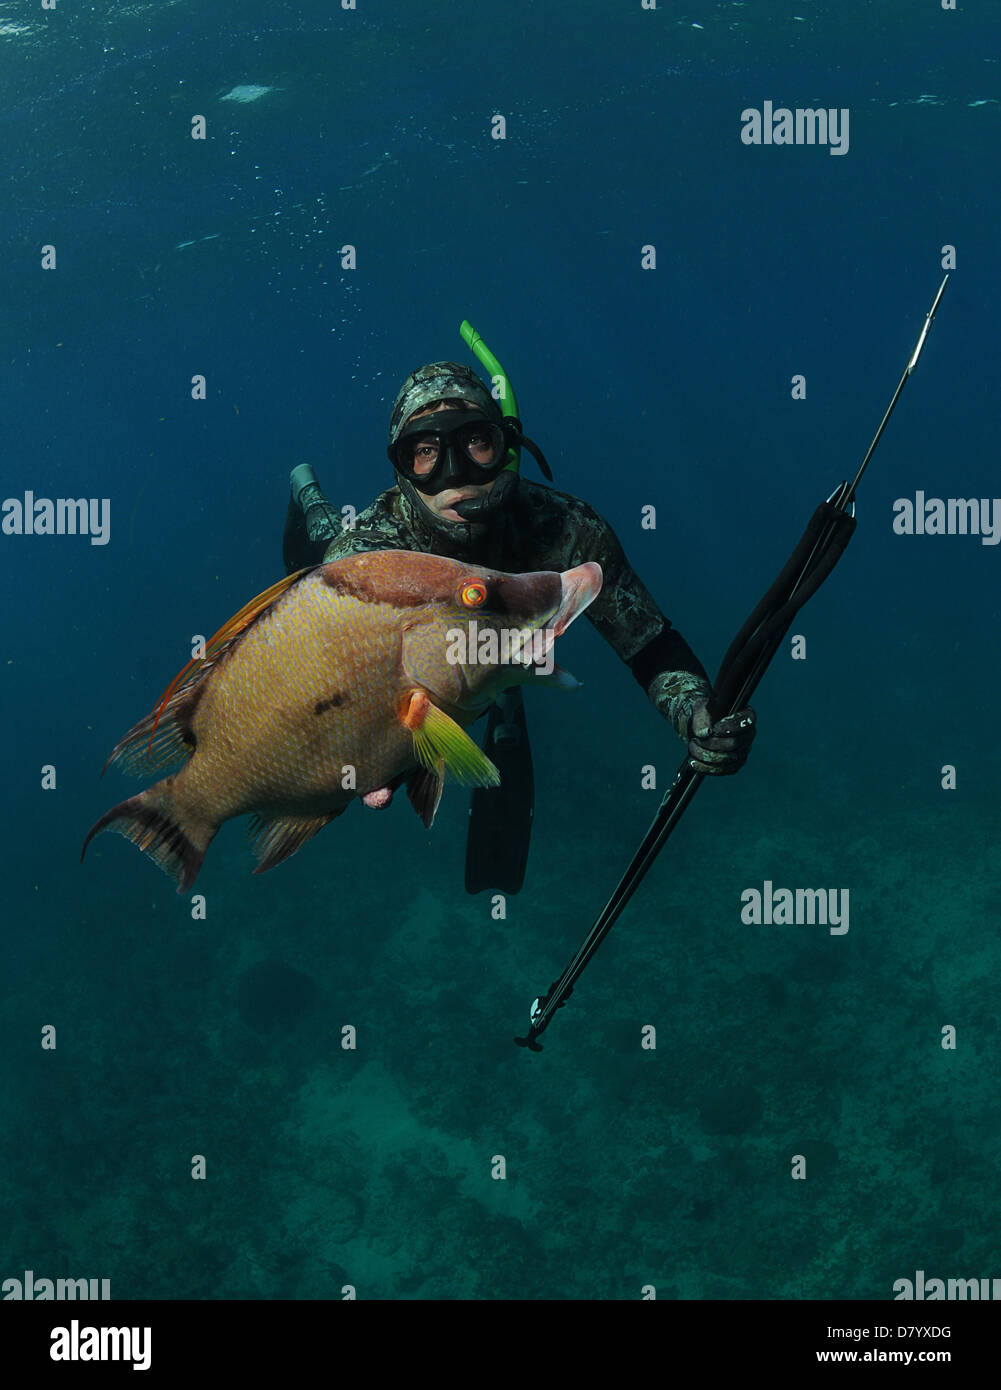 Spear Fishing Stock Photos & Spear Fishing Stock Images ...